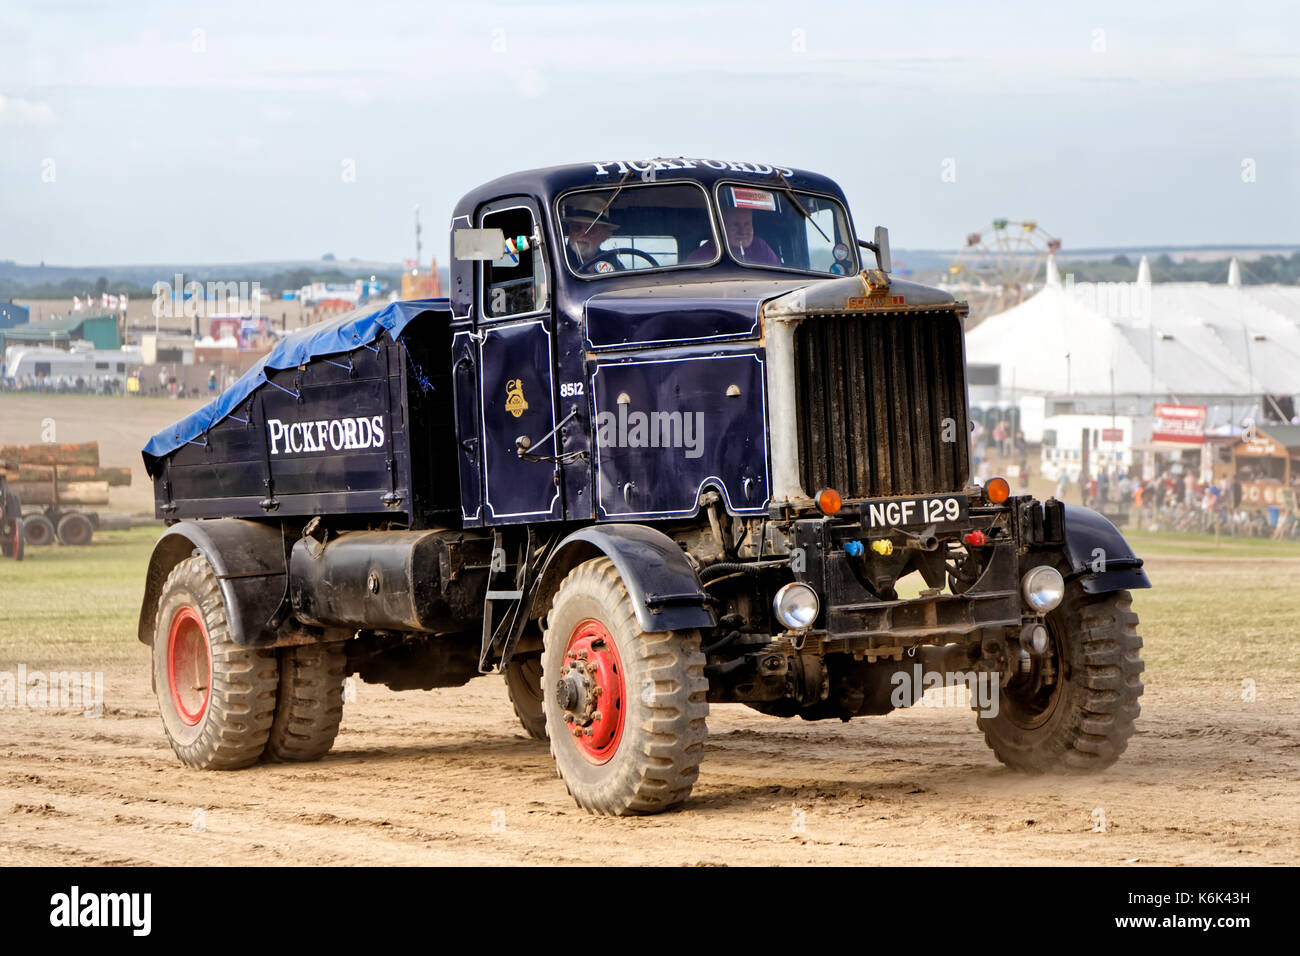 A 1952 Pickfords Scammell Mountaineer, NGF 129, at the 2017 Great Dorset Steam Fair, Tarrant Hinton, Blandford, Dorset, United Kingdom. - Stock Image